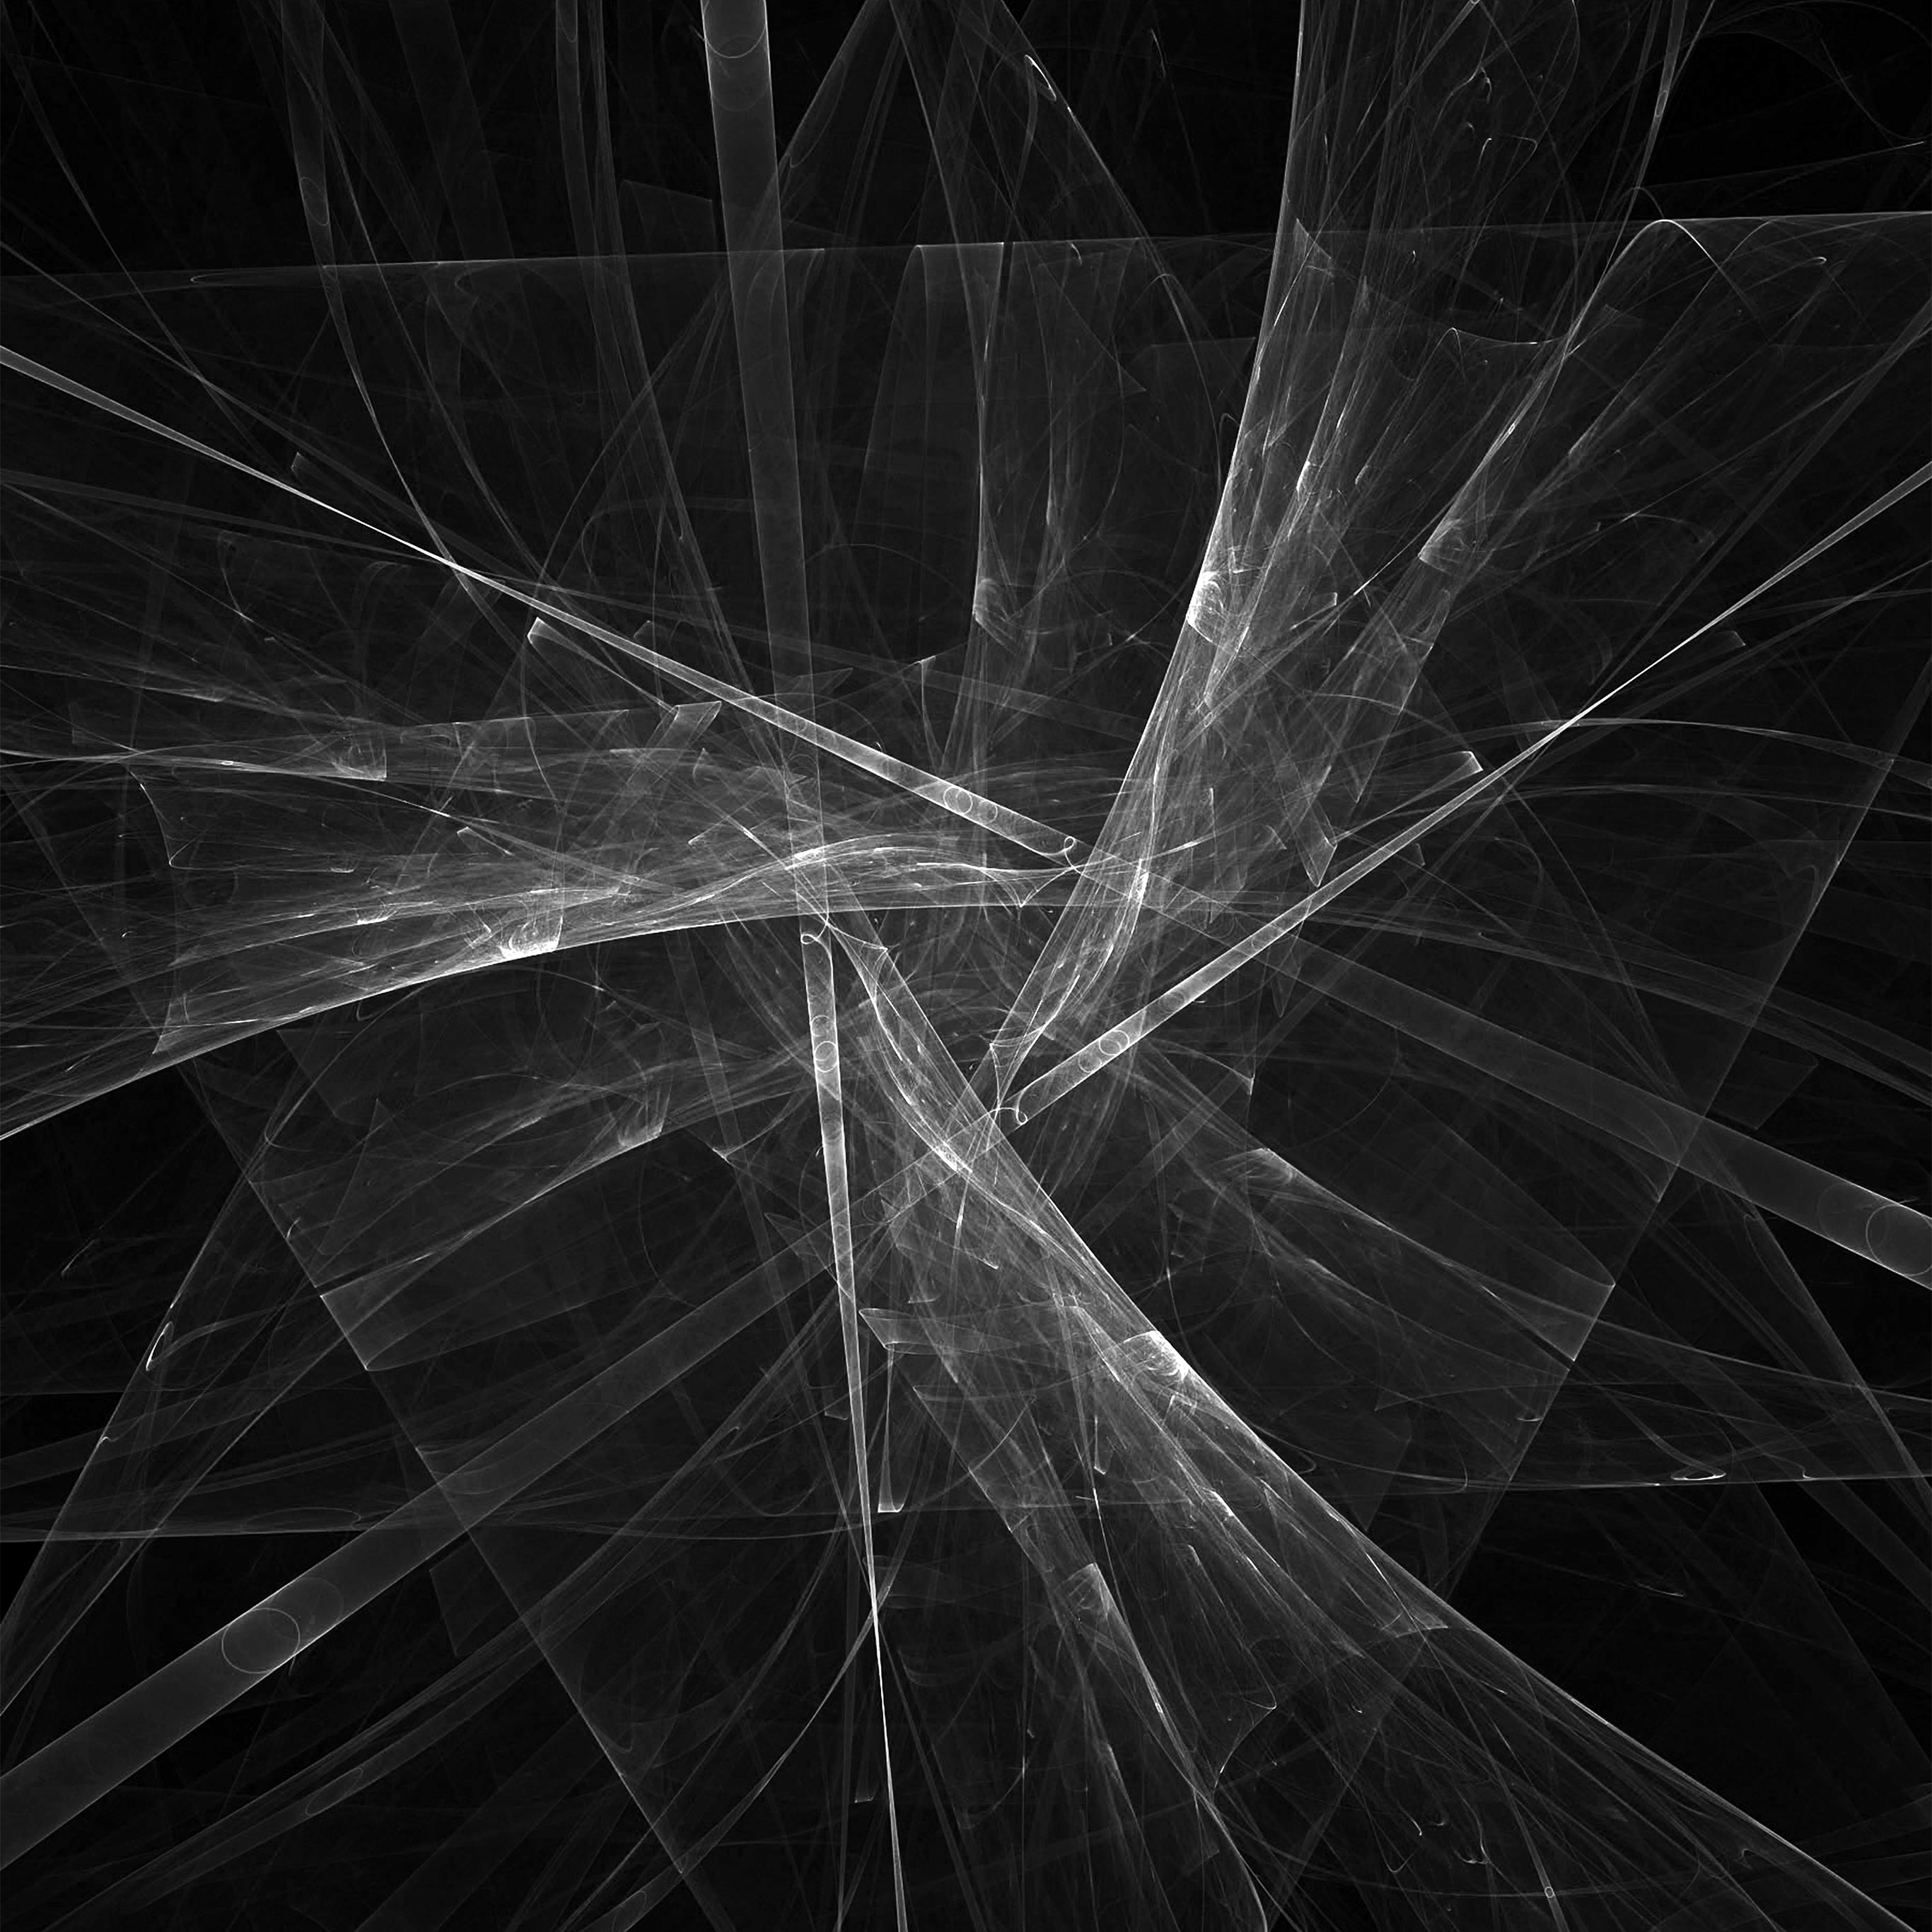 vs86-triangle-art-abstract-bw-dark-pattern-wallpaper